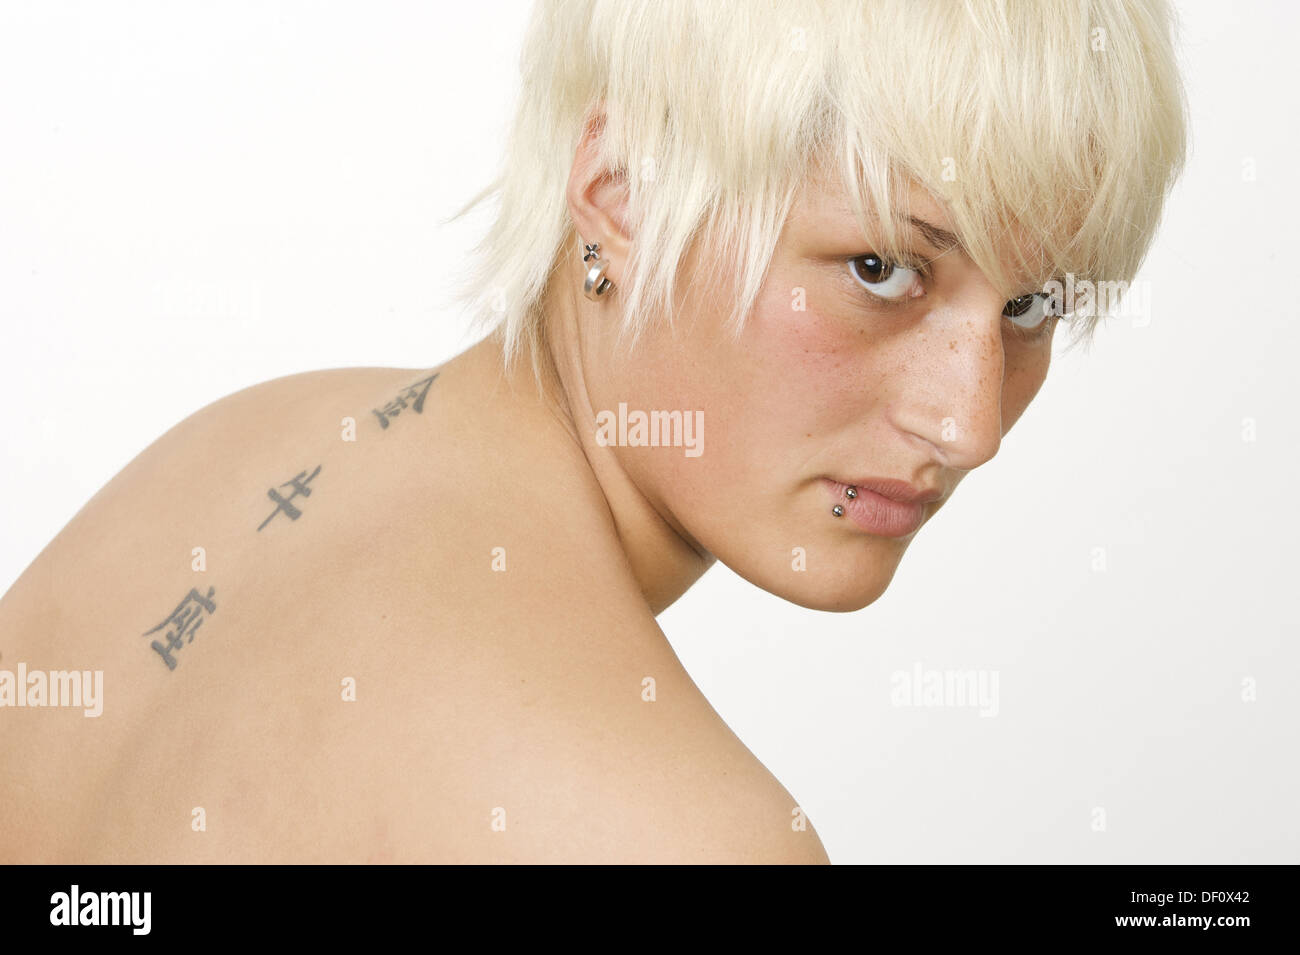 Herne, Germany, Portrait photo of a tattooed and pierced woman Stock Photo